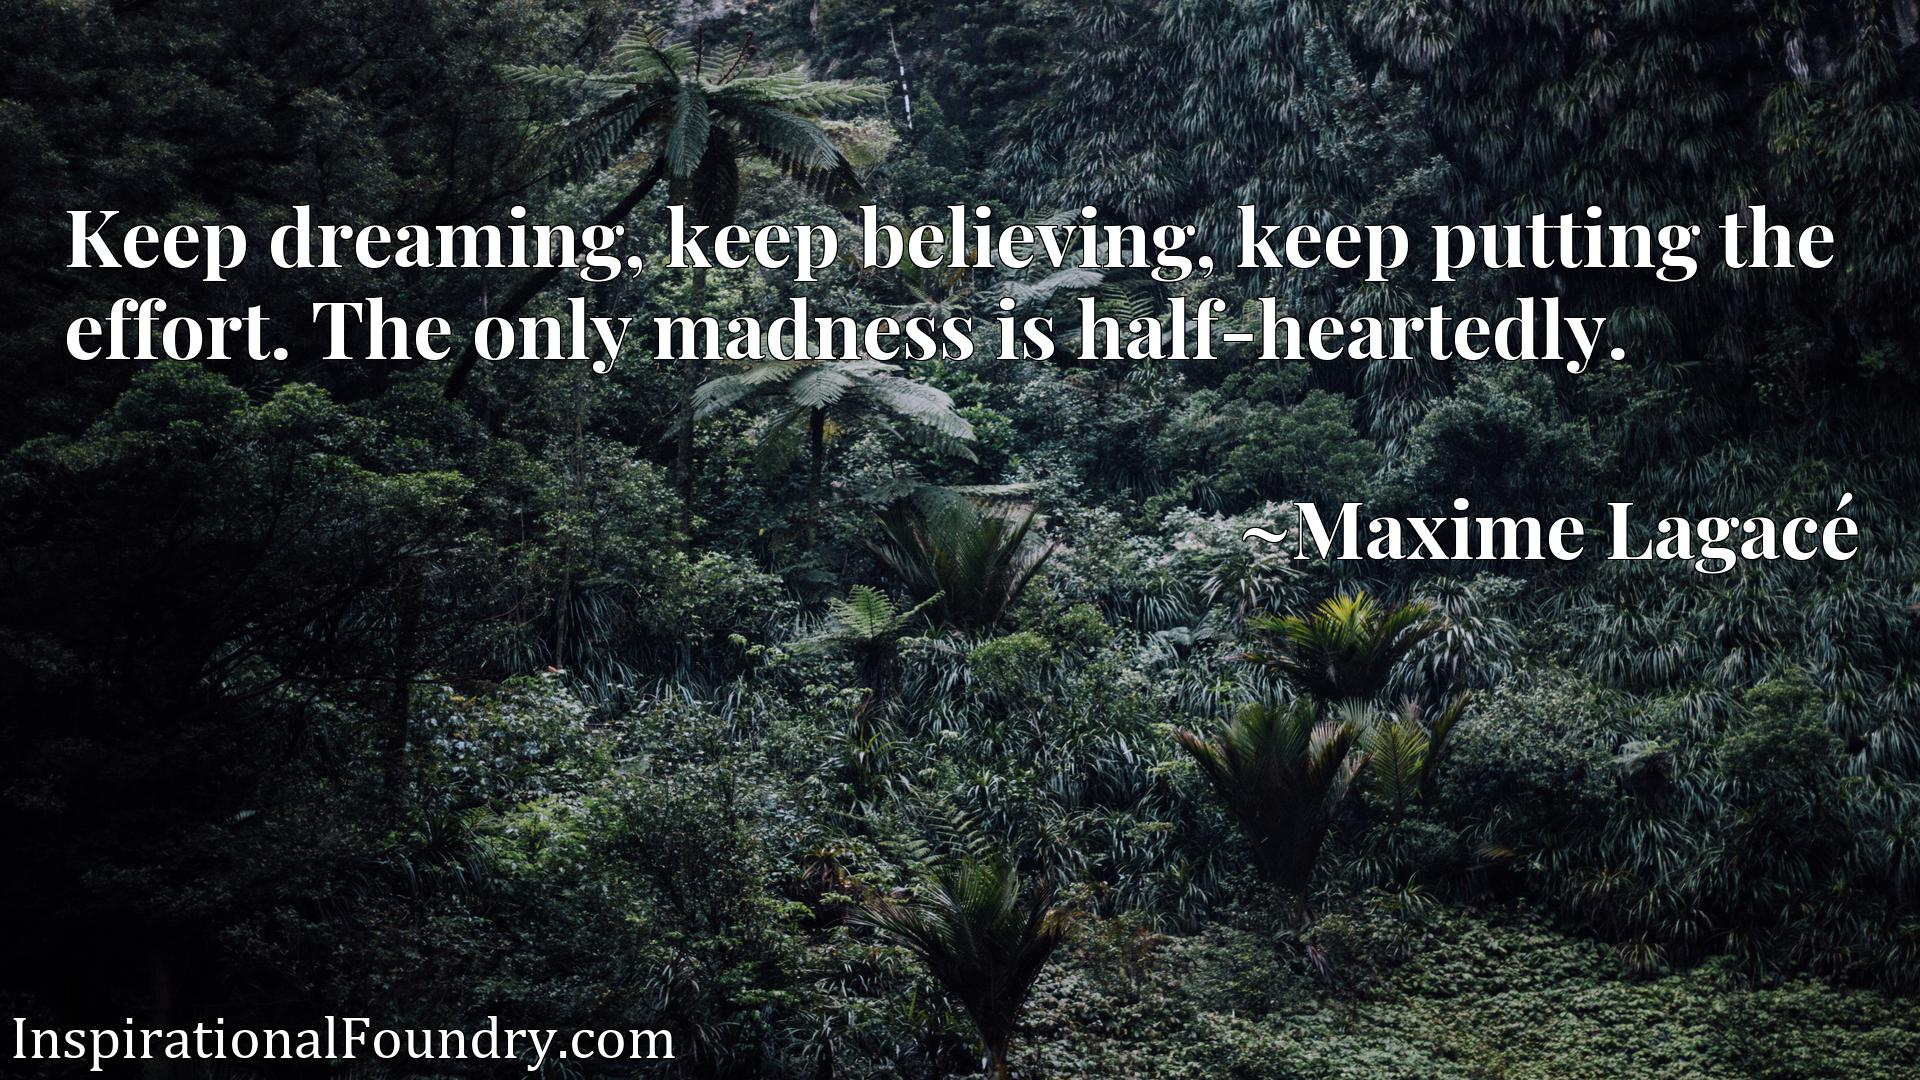 Keep dreaming, keep believing, keep putting the effort. The only madness is half-heartedly.